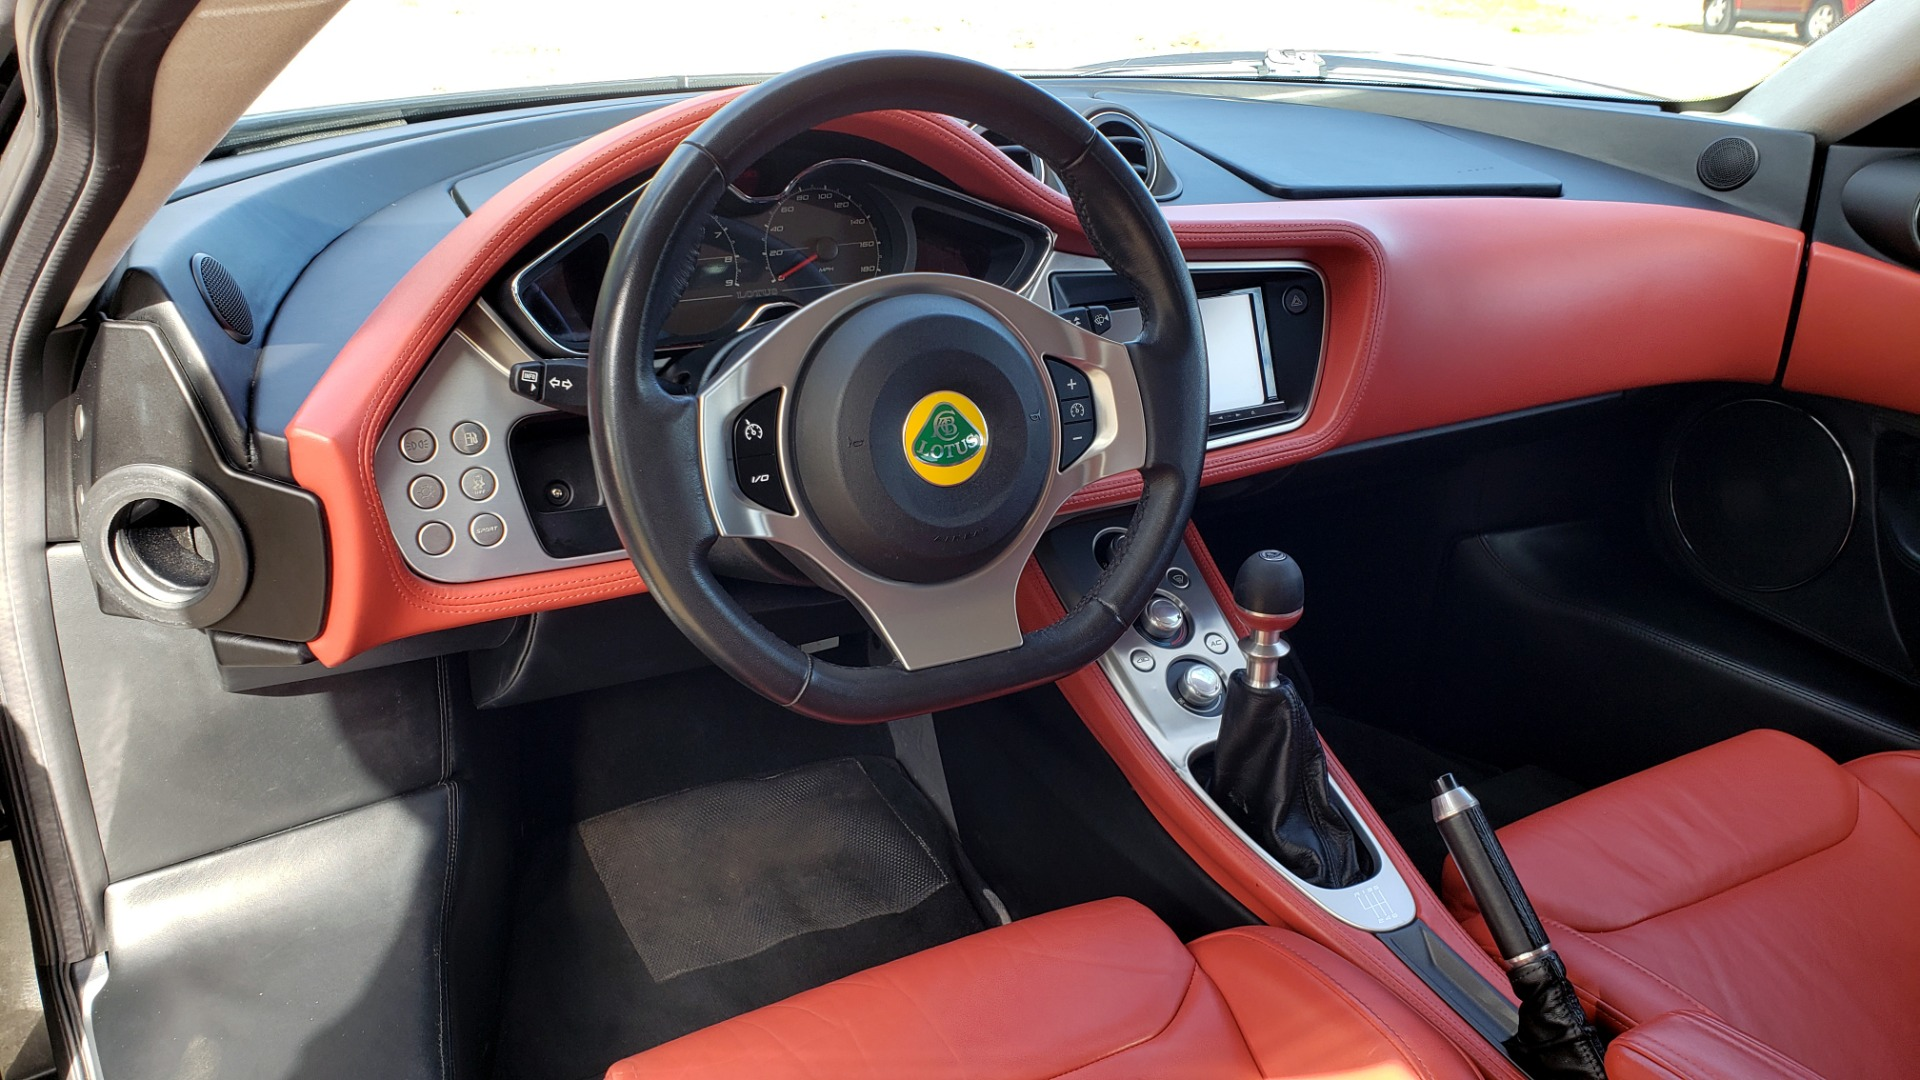 Used 2011 Lotus EVORA S 2+2 / 3.5L V6 / 6-SPD MANUAL / PIONEER / REARVIEW / LOW MILES for sale Sold at Formula Imports in Charlotte NC 28227 22